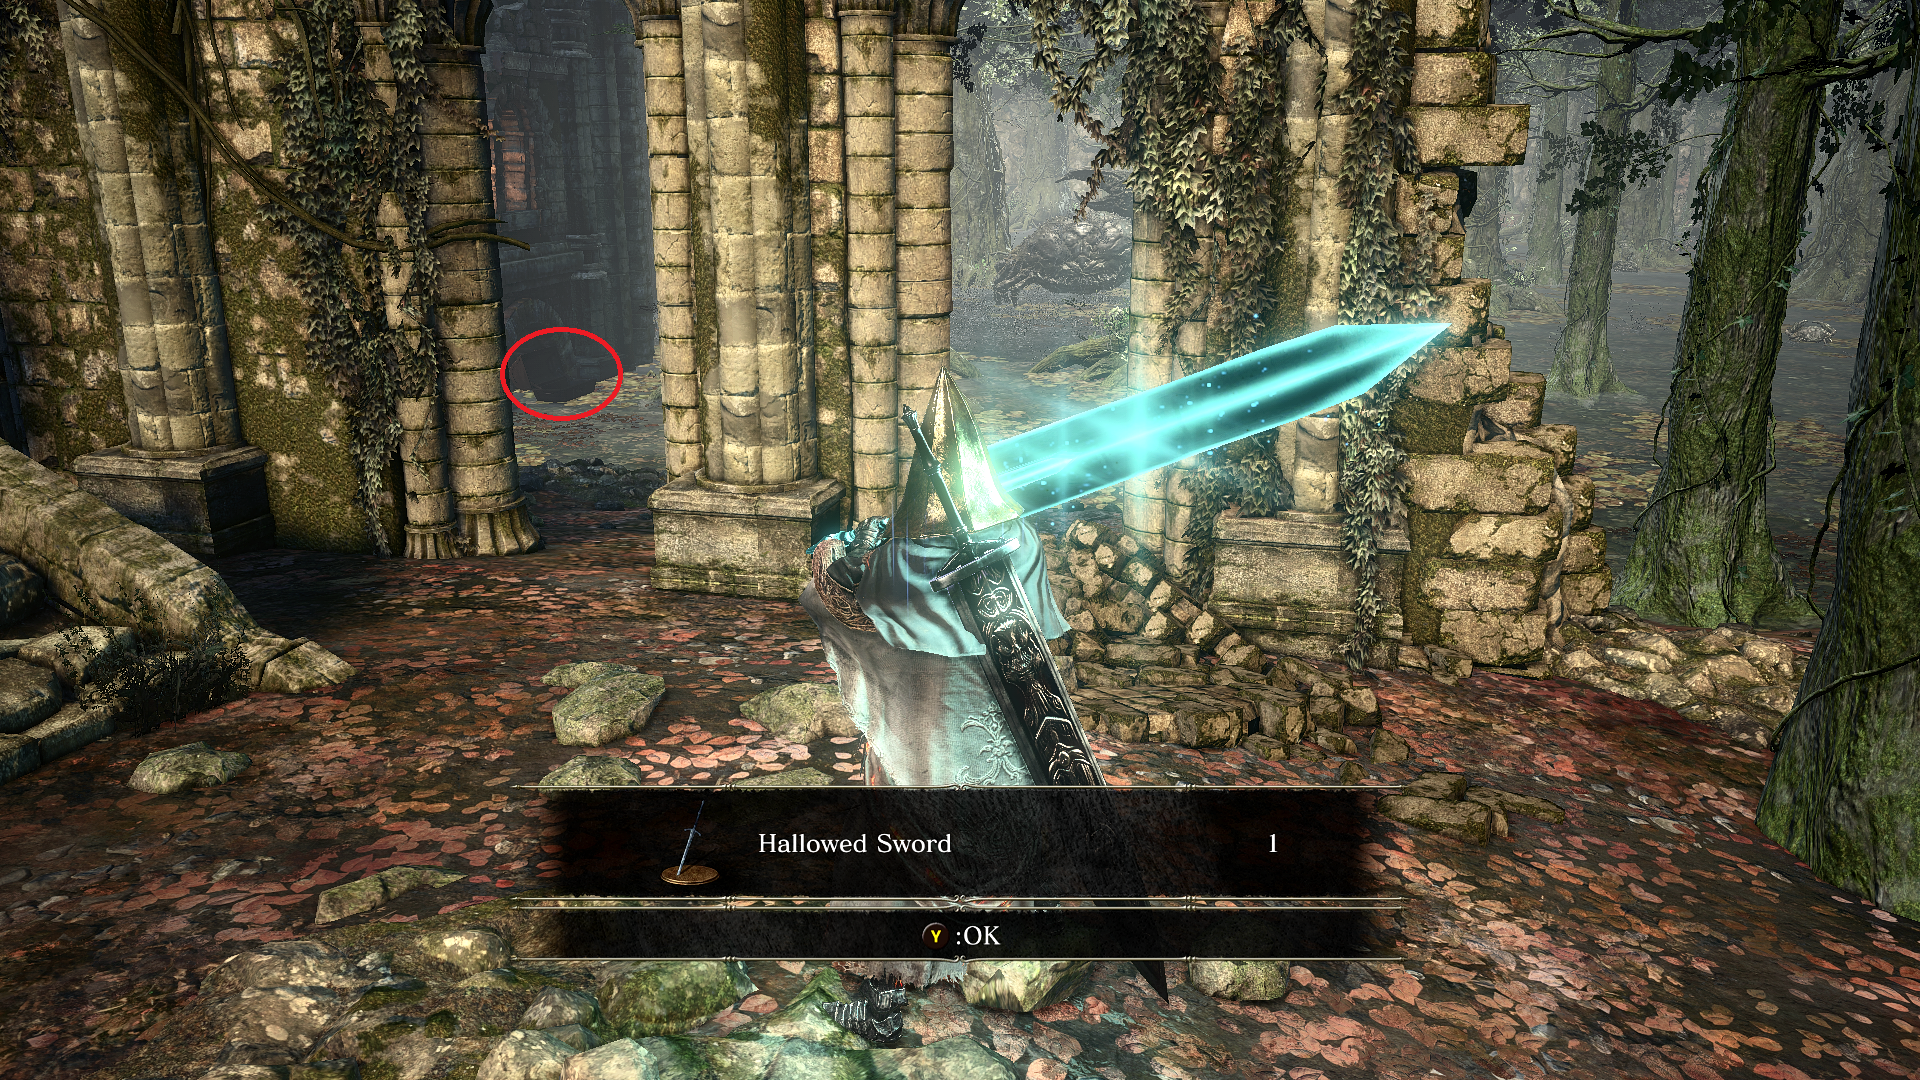 Hallowed_Sword.png